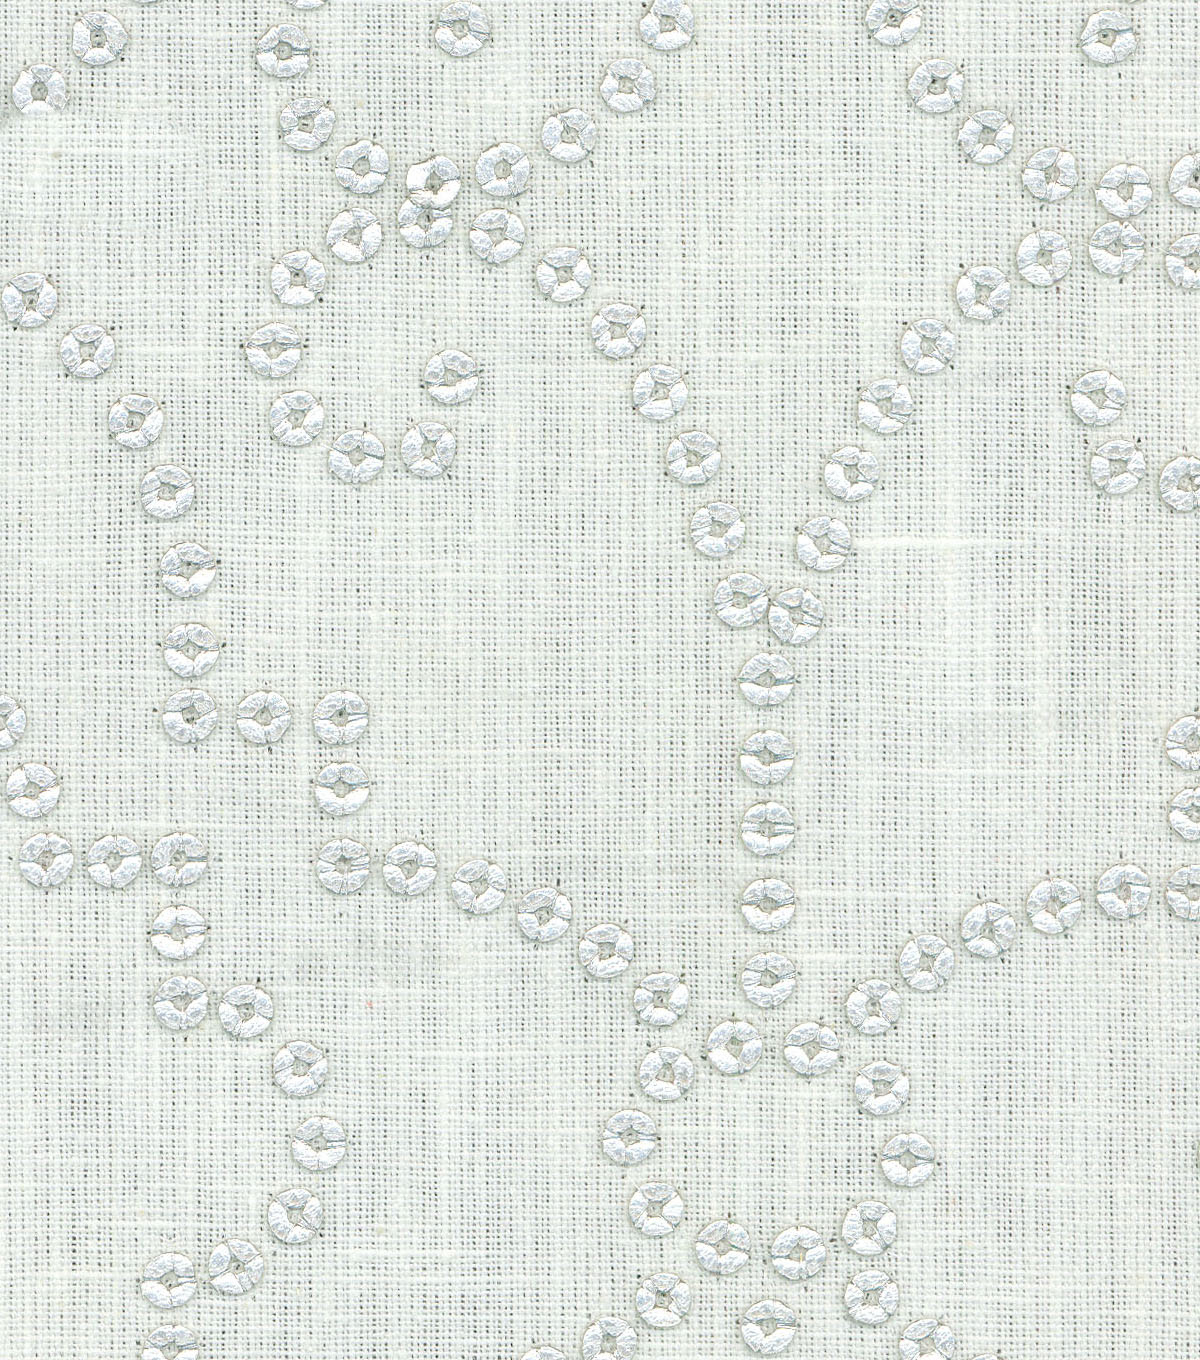 Dena Designs Upholstery Fabric 13x13\u0022 Swatch-Wow Factor Emb Sterling